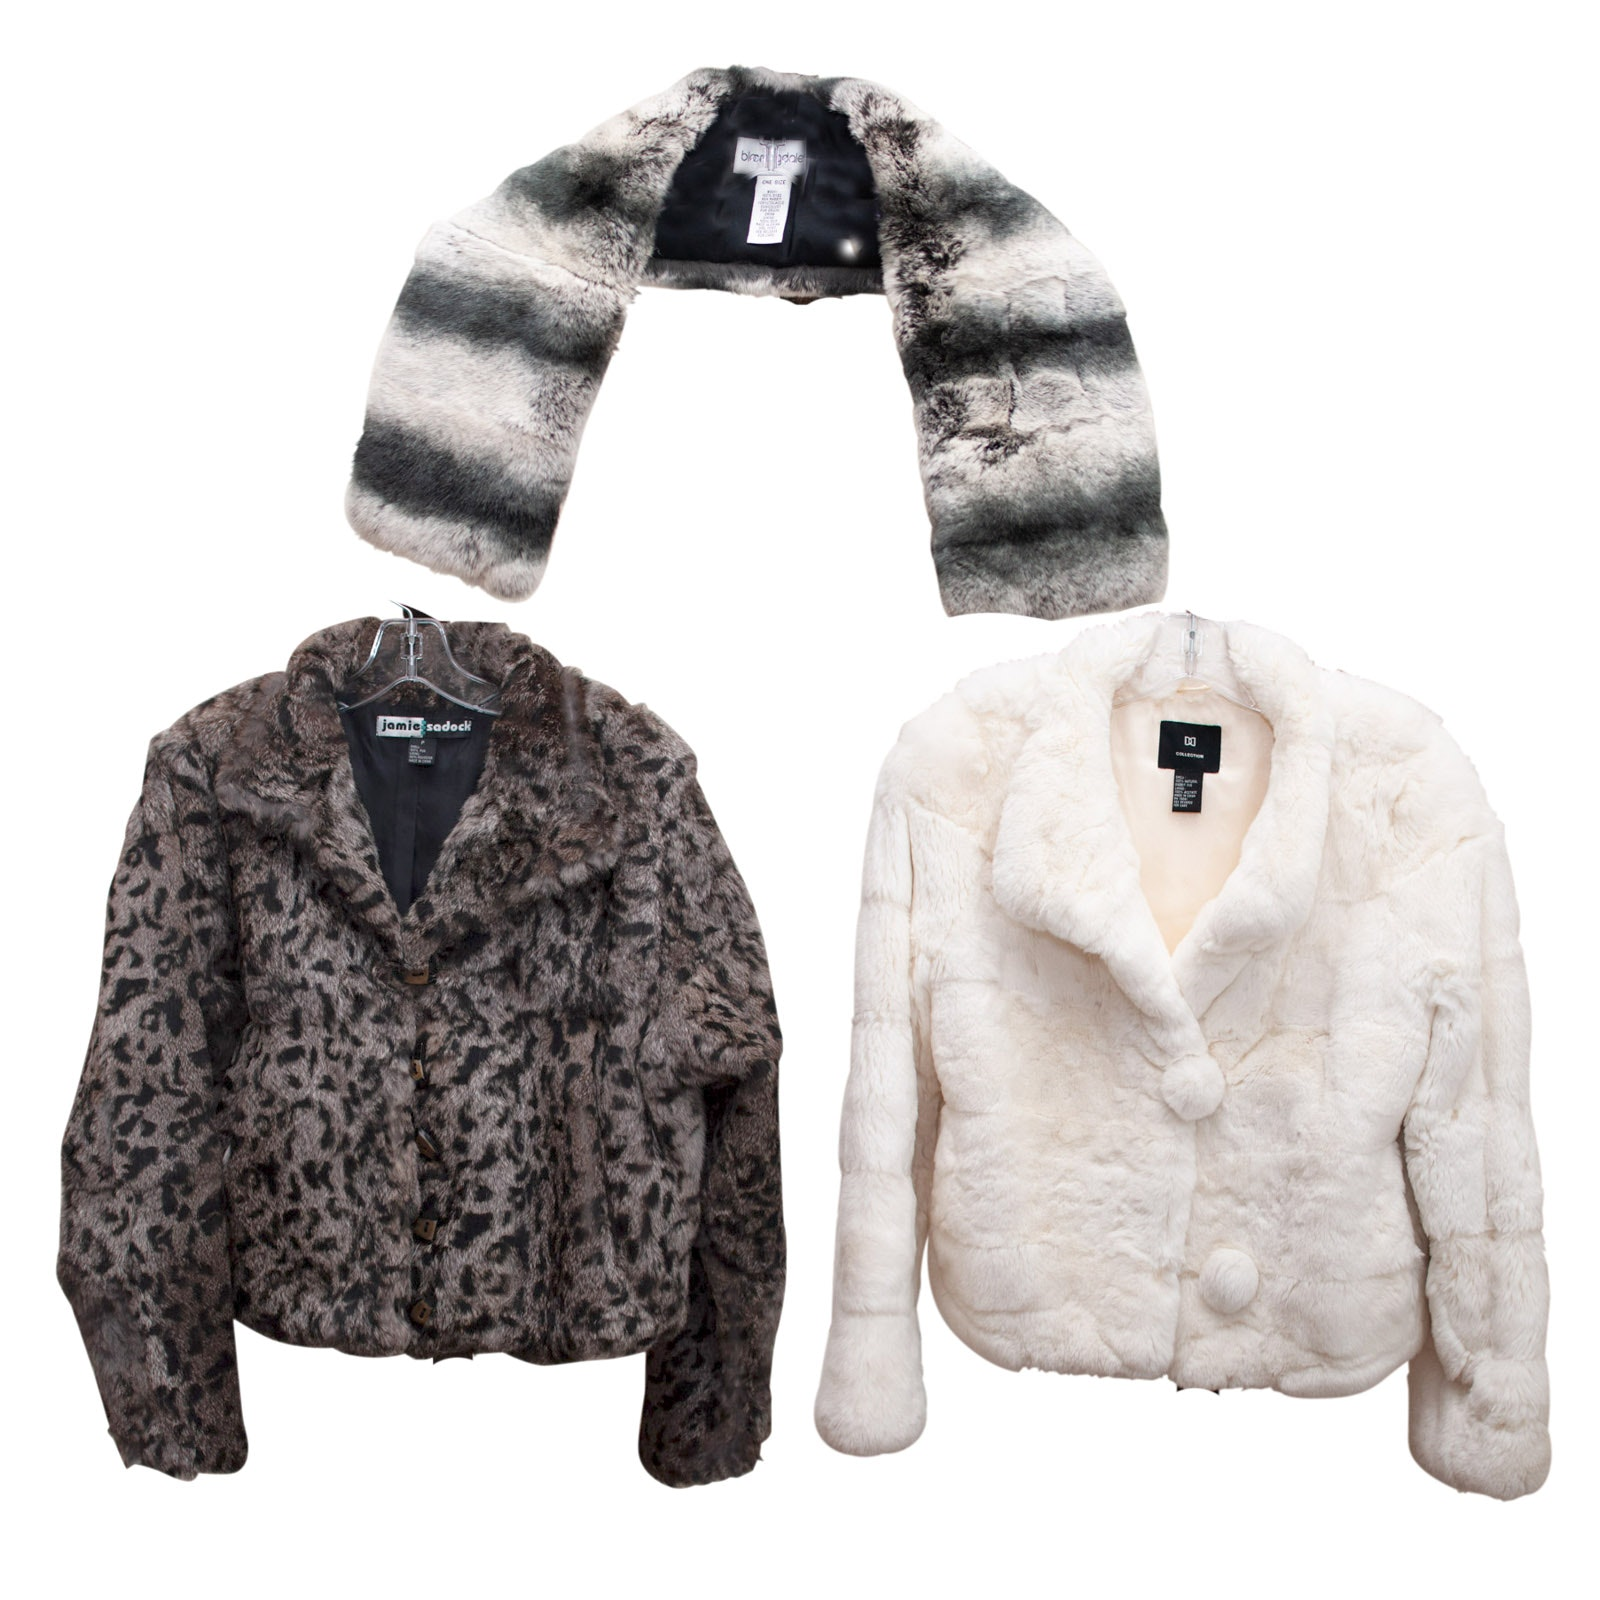 Women's Rabbit Fur Jackets and Scarf by J. Sadock, Doncaster and Bloomingdale's